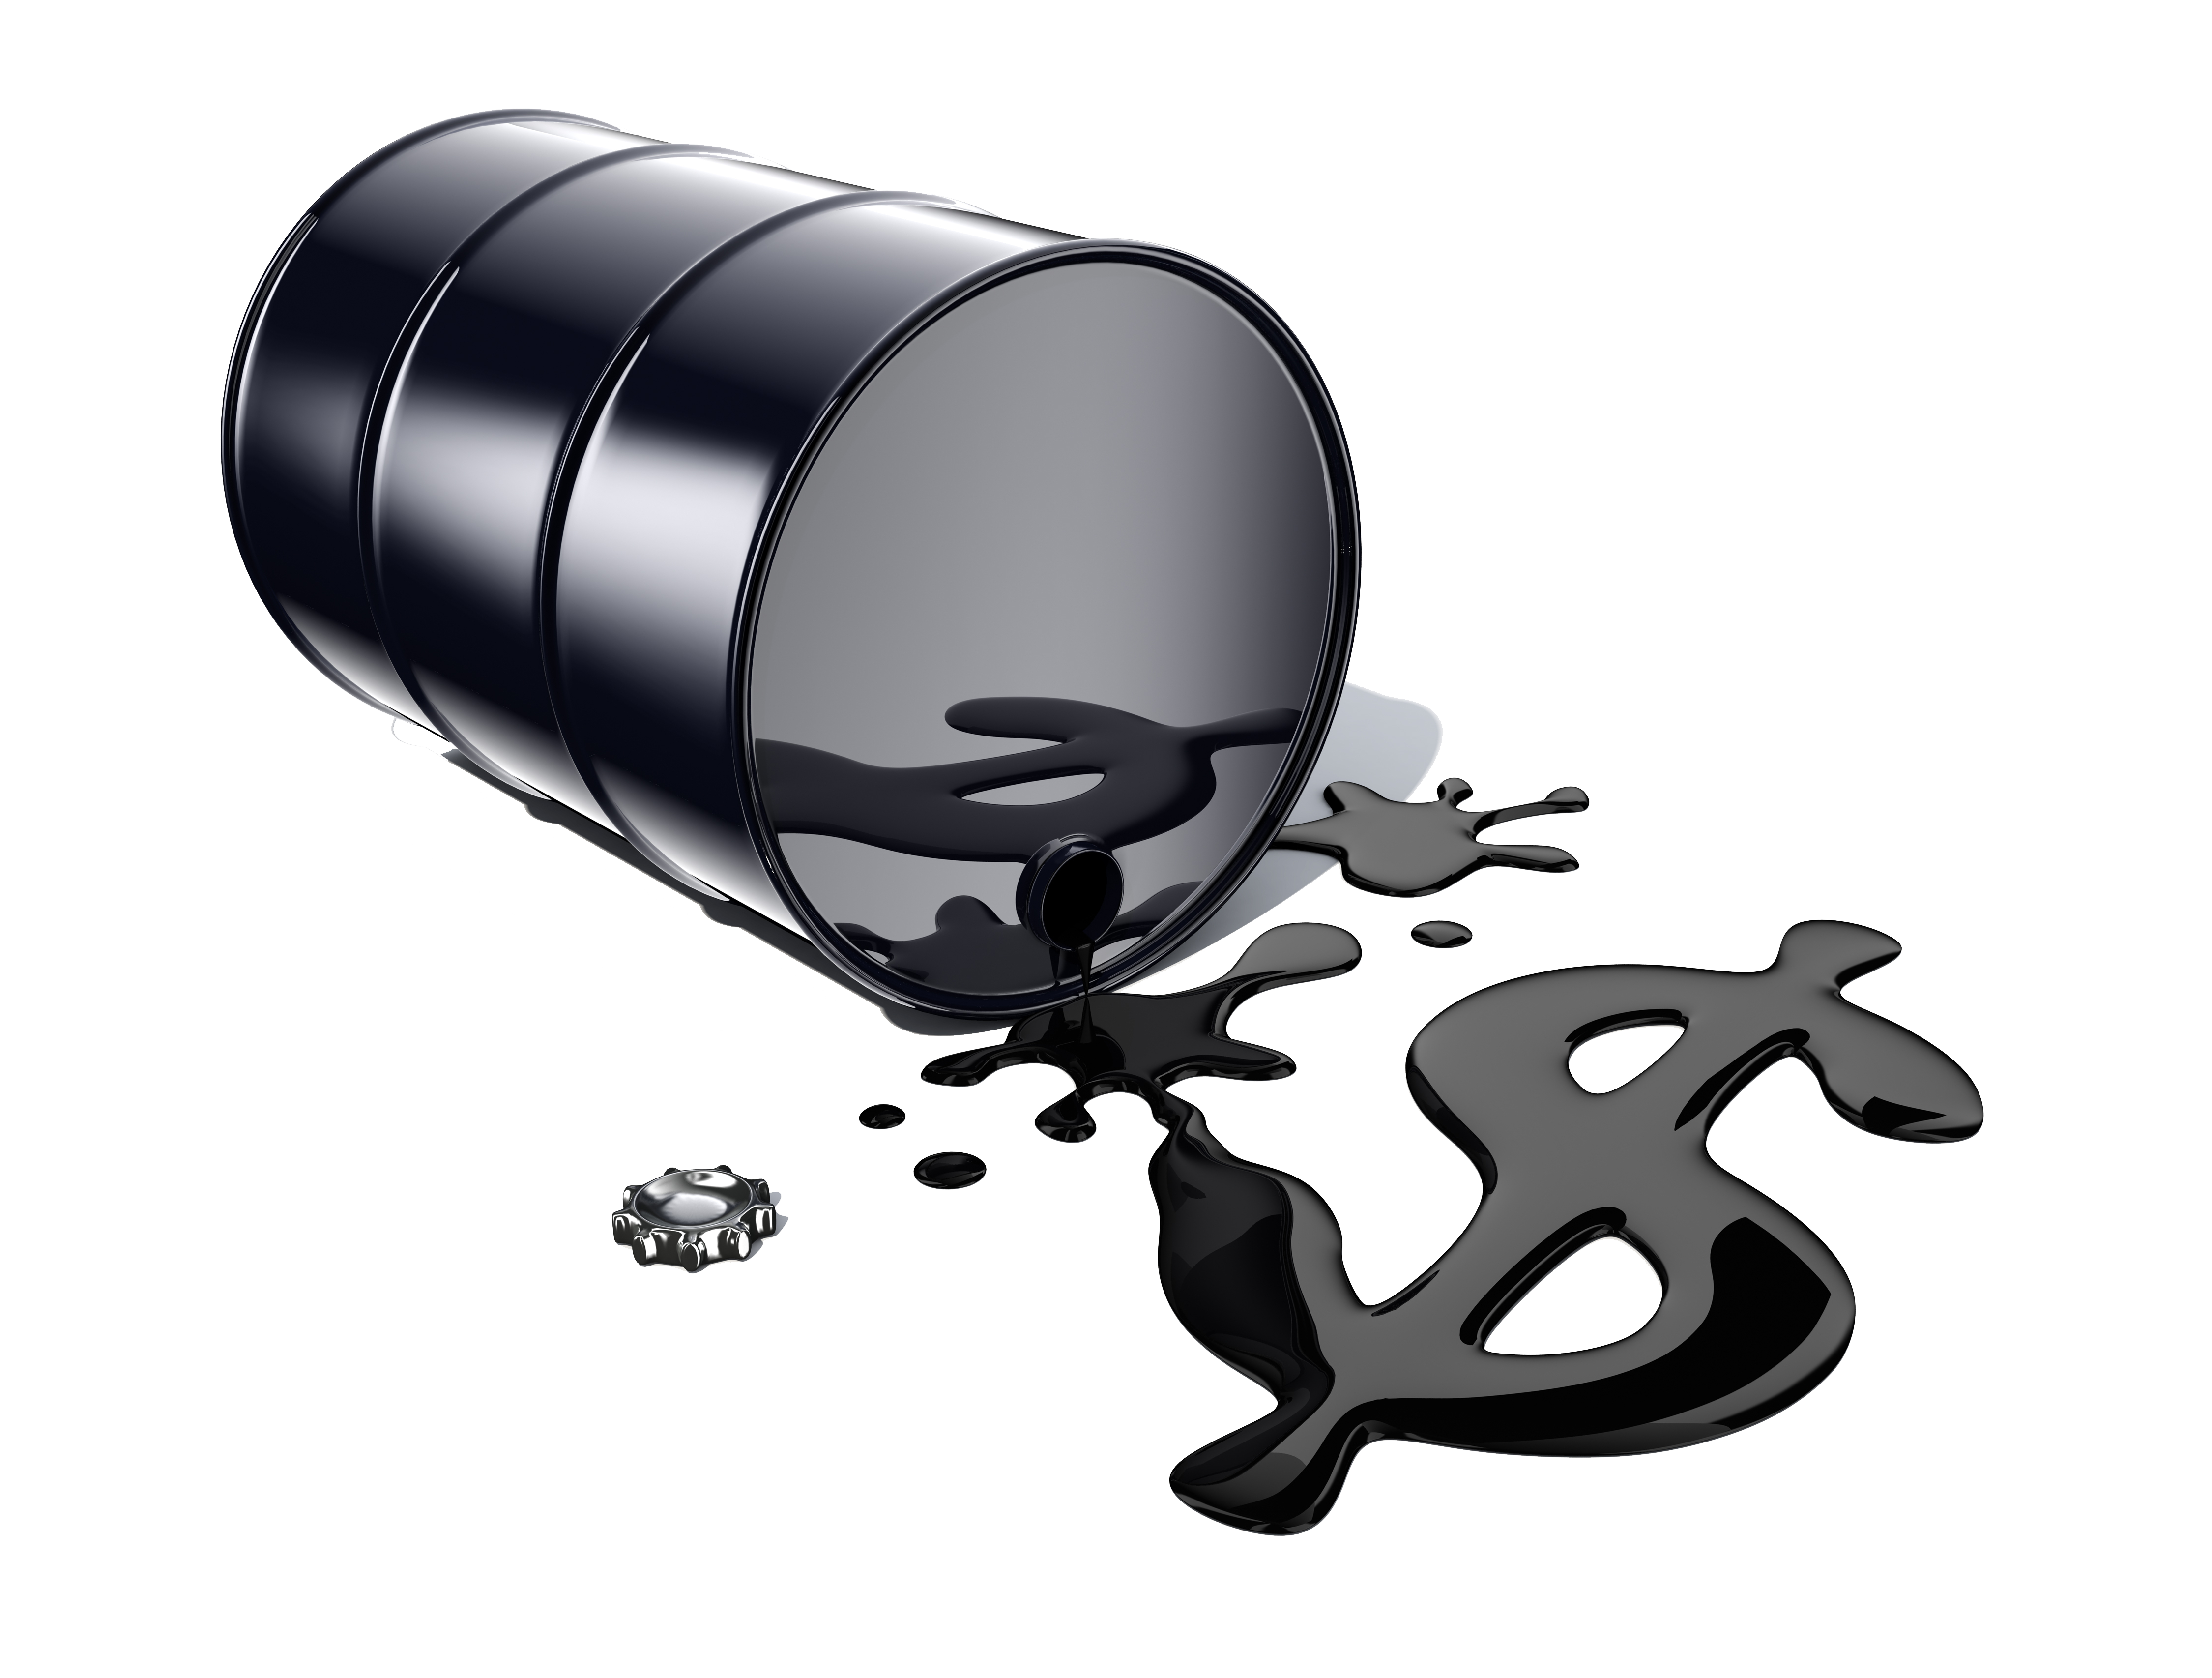 Oil clipart petroleum barrel. Mercato del petrolio brent